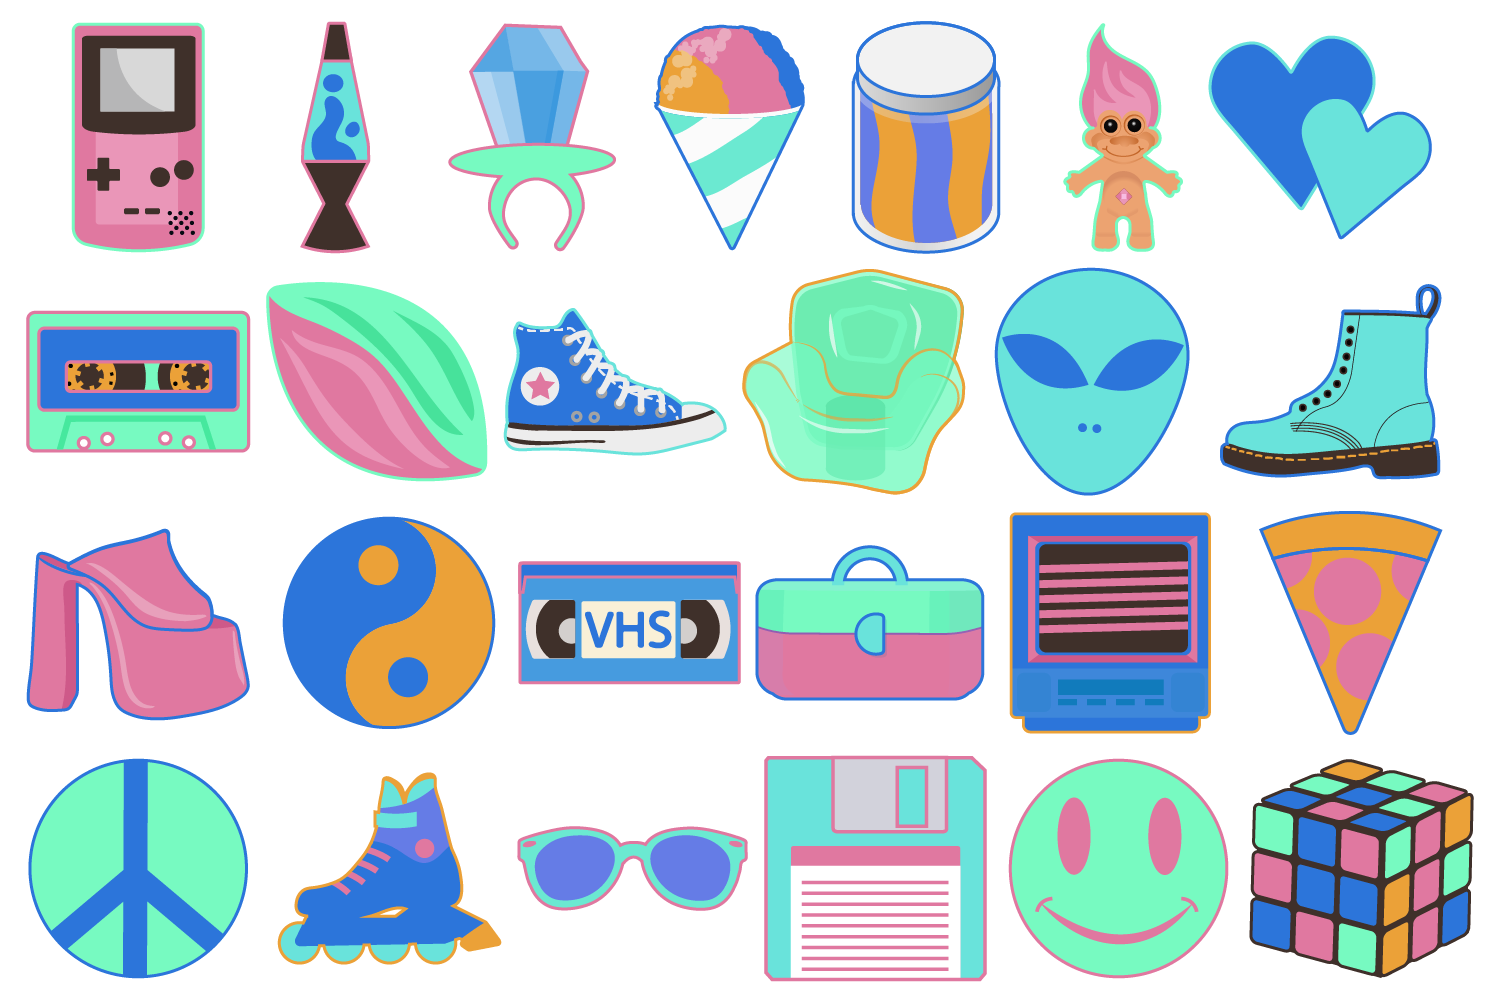 Neon 90's Clipart Set - 25 icons example image 1